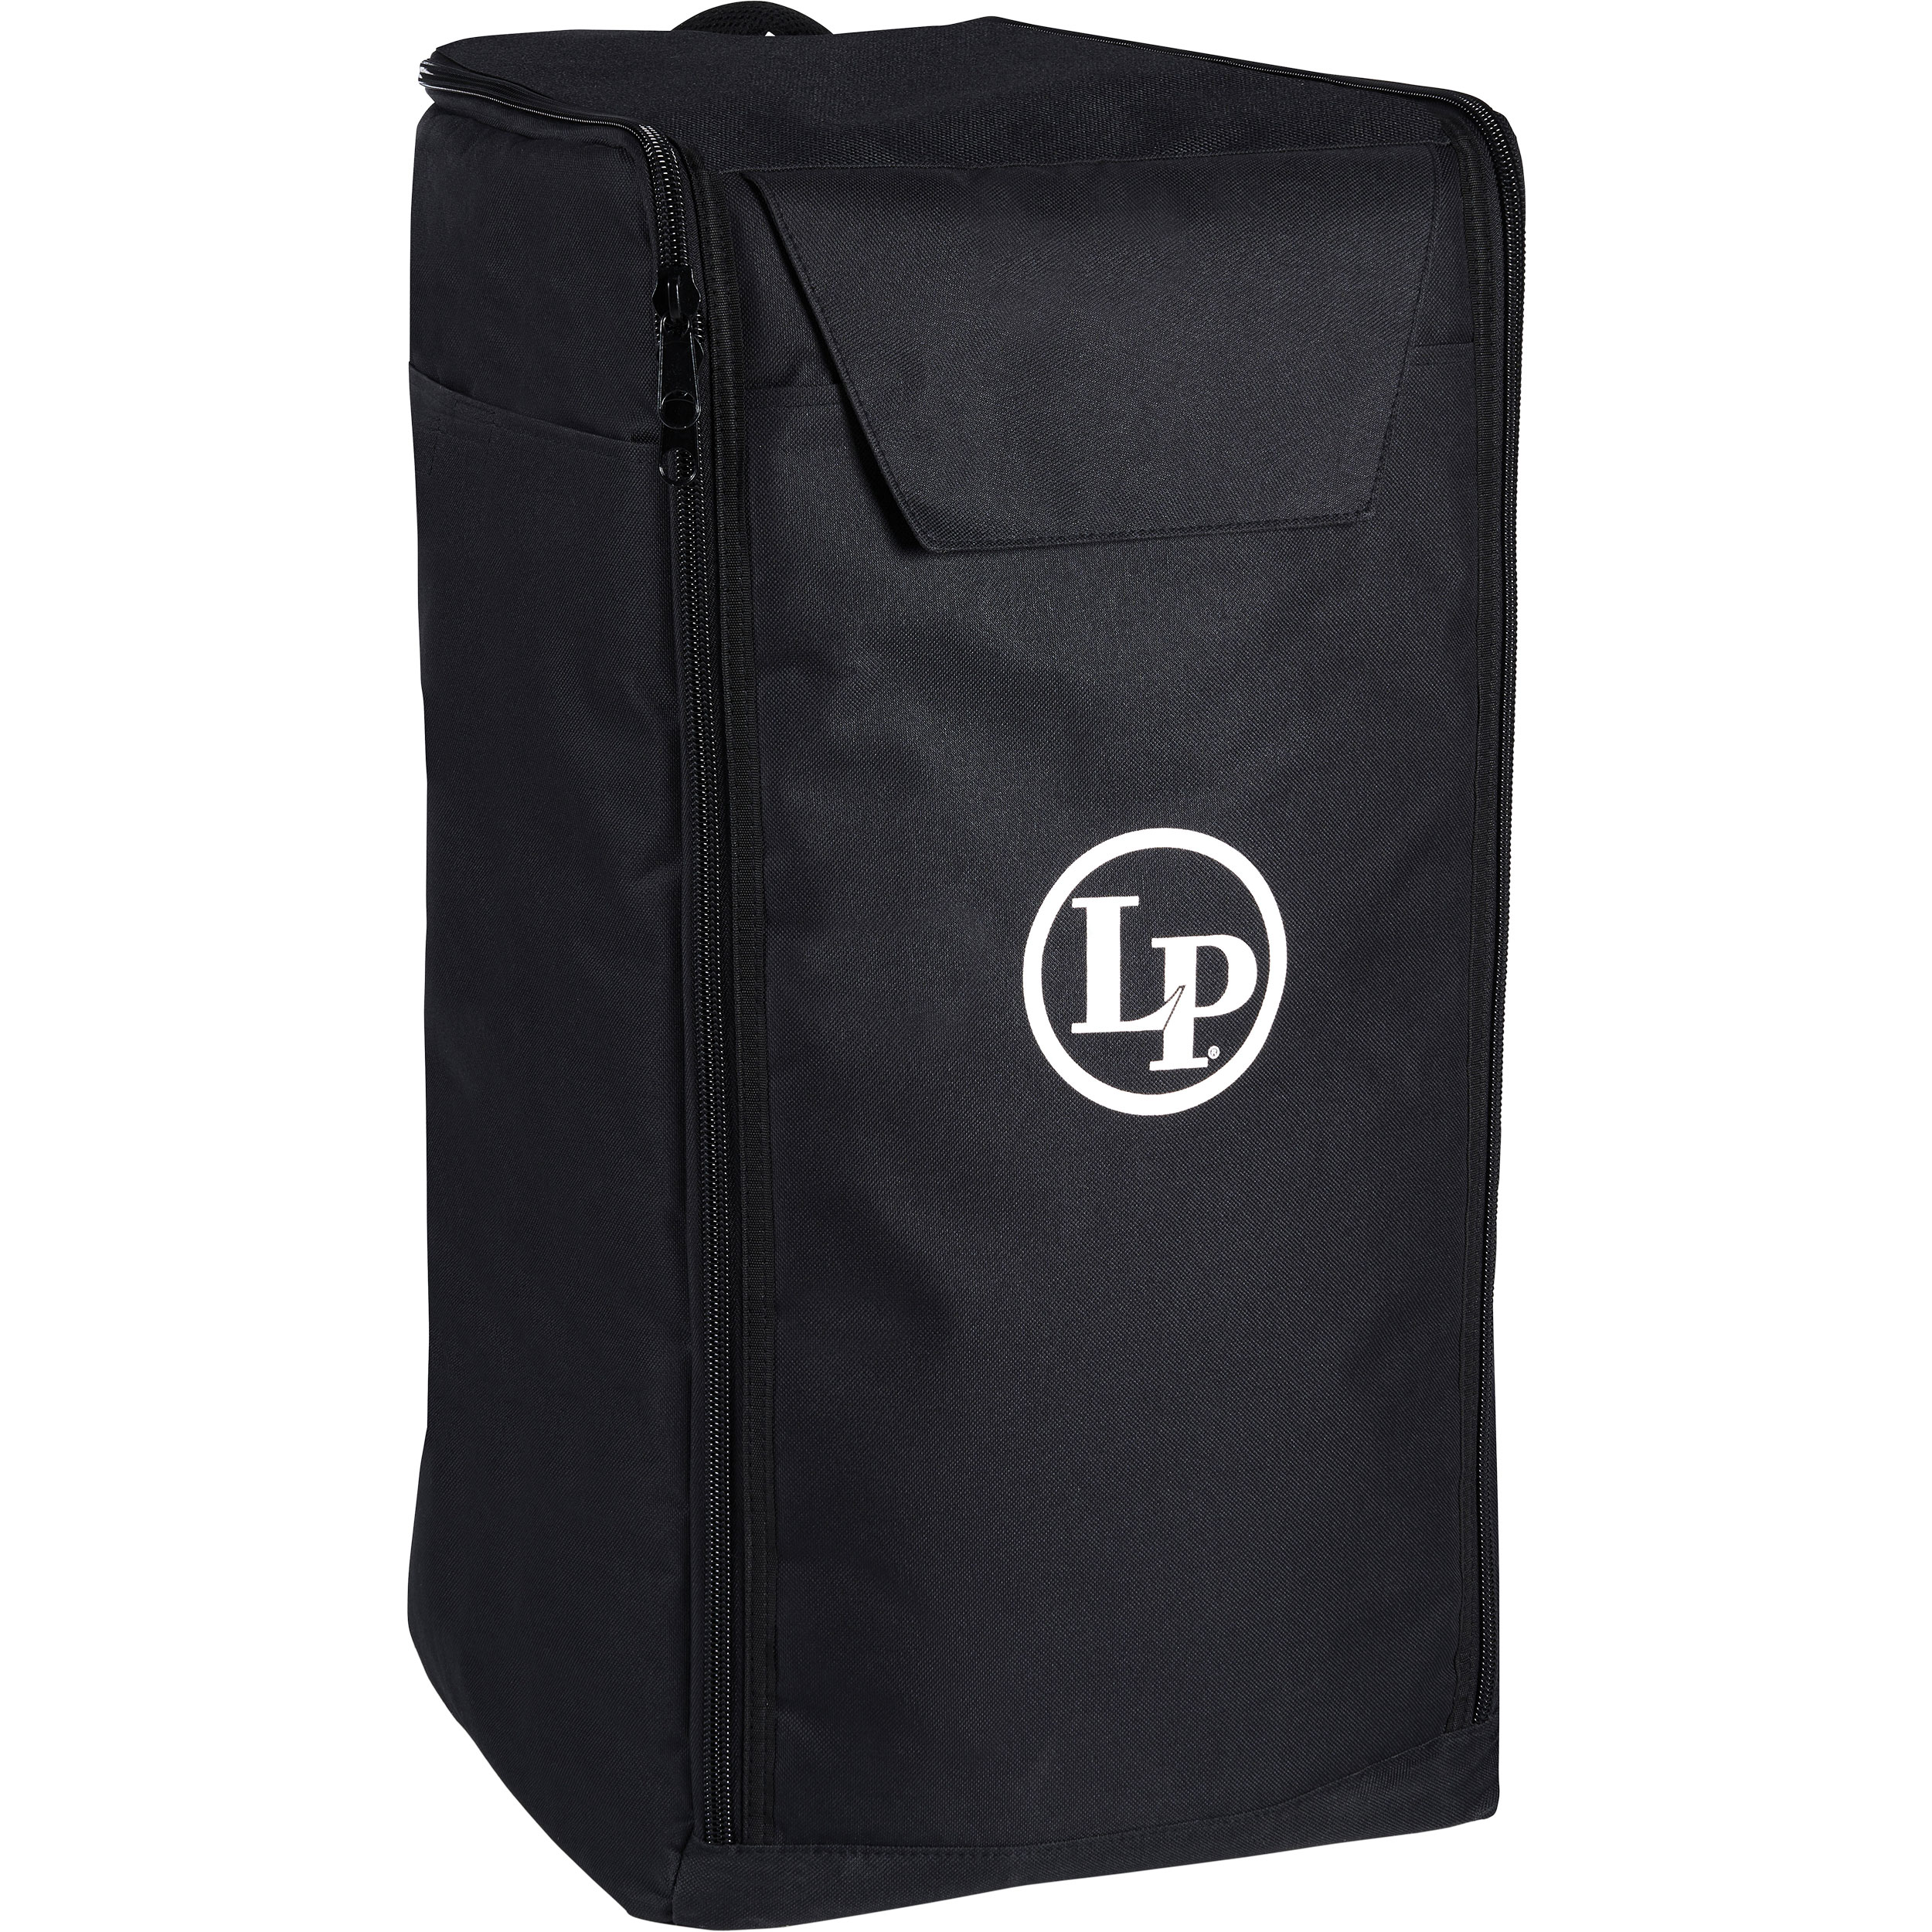 LP Bag for 3-Zone Cajon Box Kit